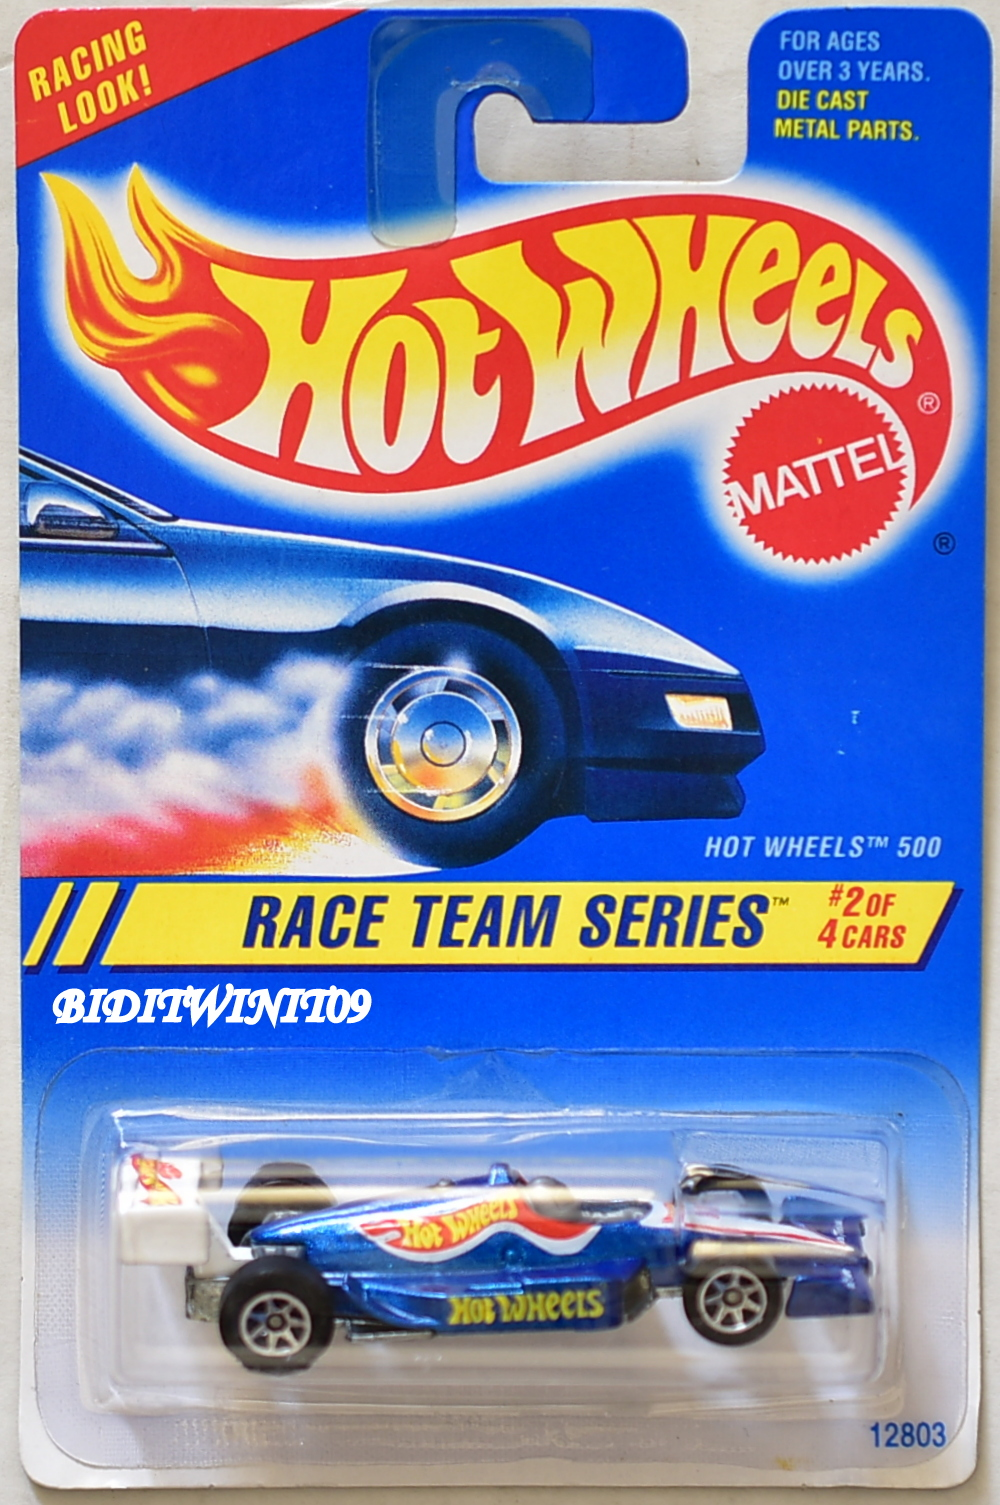 HOT WHEELS 1994 SPEED GREAMER SERIES HOT WHEELS 500 #2/4 E+